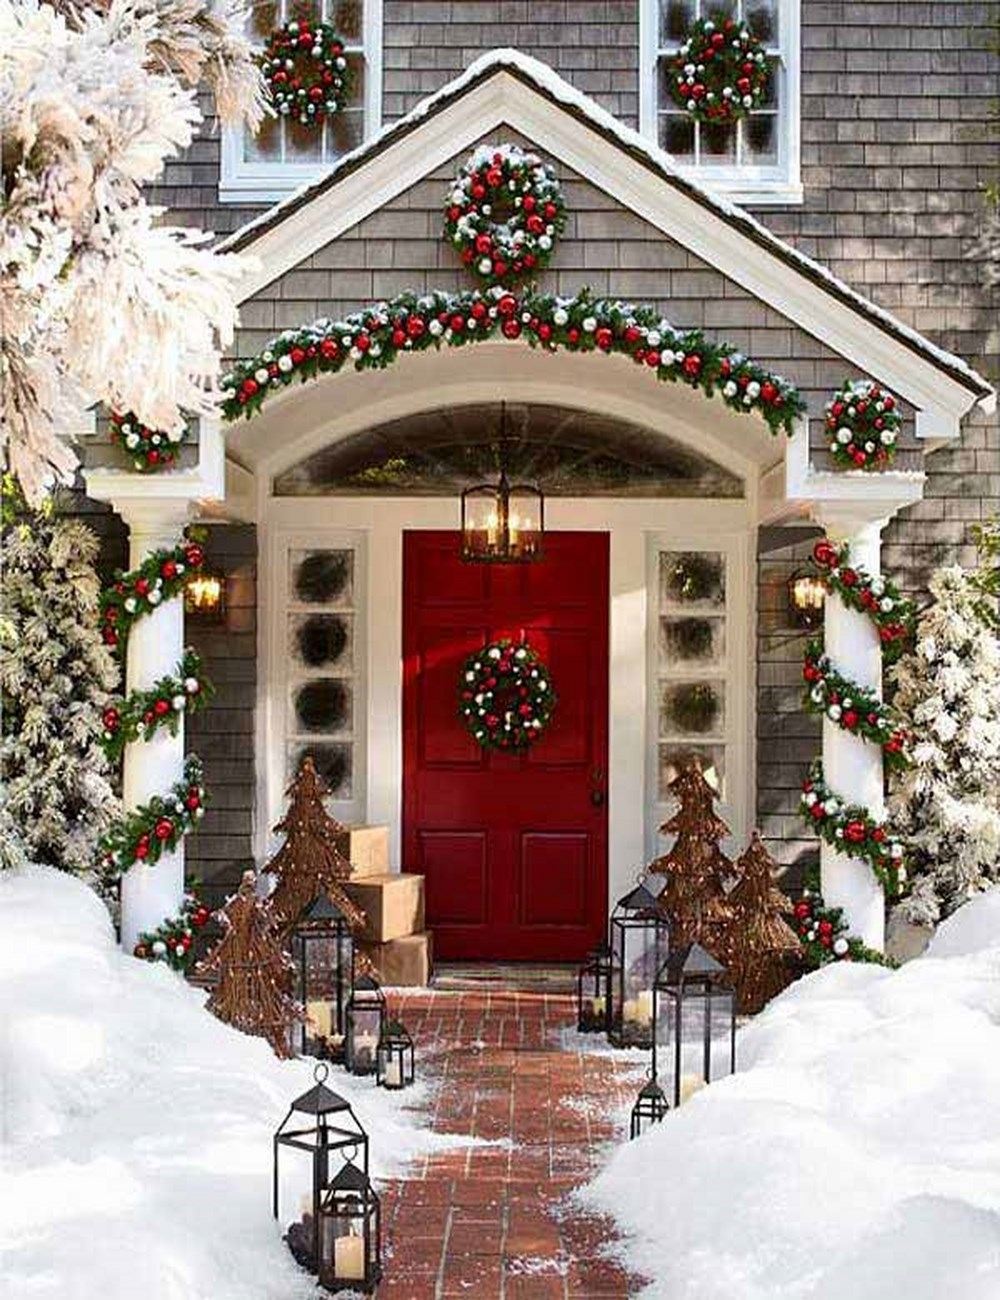 7 Chic Christmas Decorations for The Most Memorable Holiday 08 chic christmas decorations 7 Chic Christmas Decorations for The Most Memorable Holiday 7 Chic Christmas Decorations for The Most Unforgettable Holiday 08